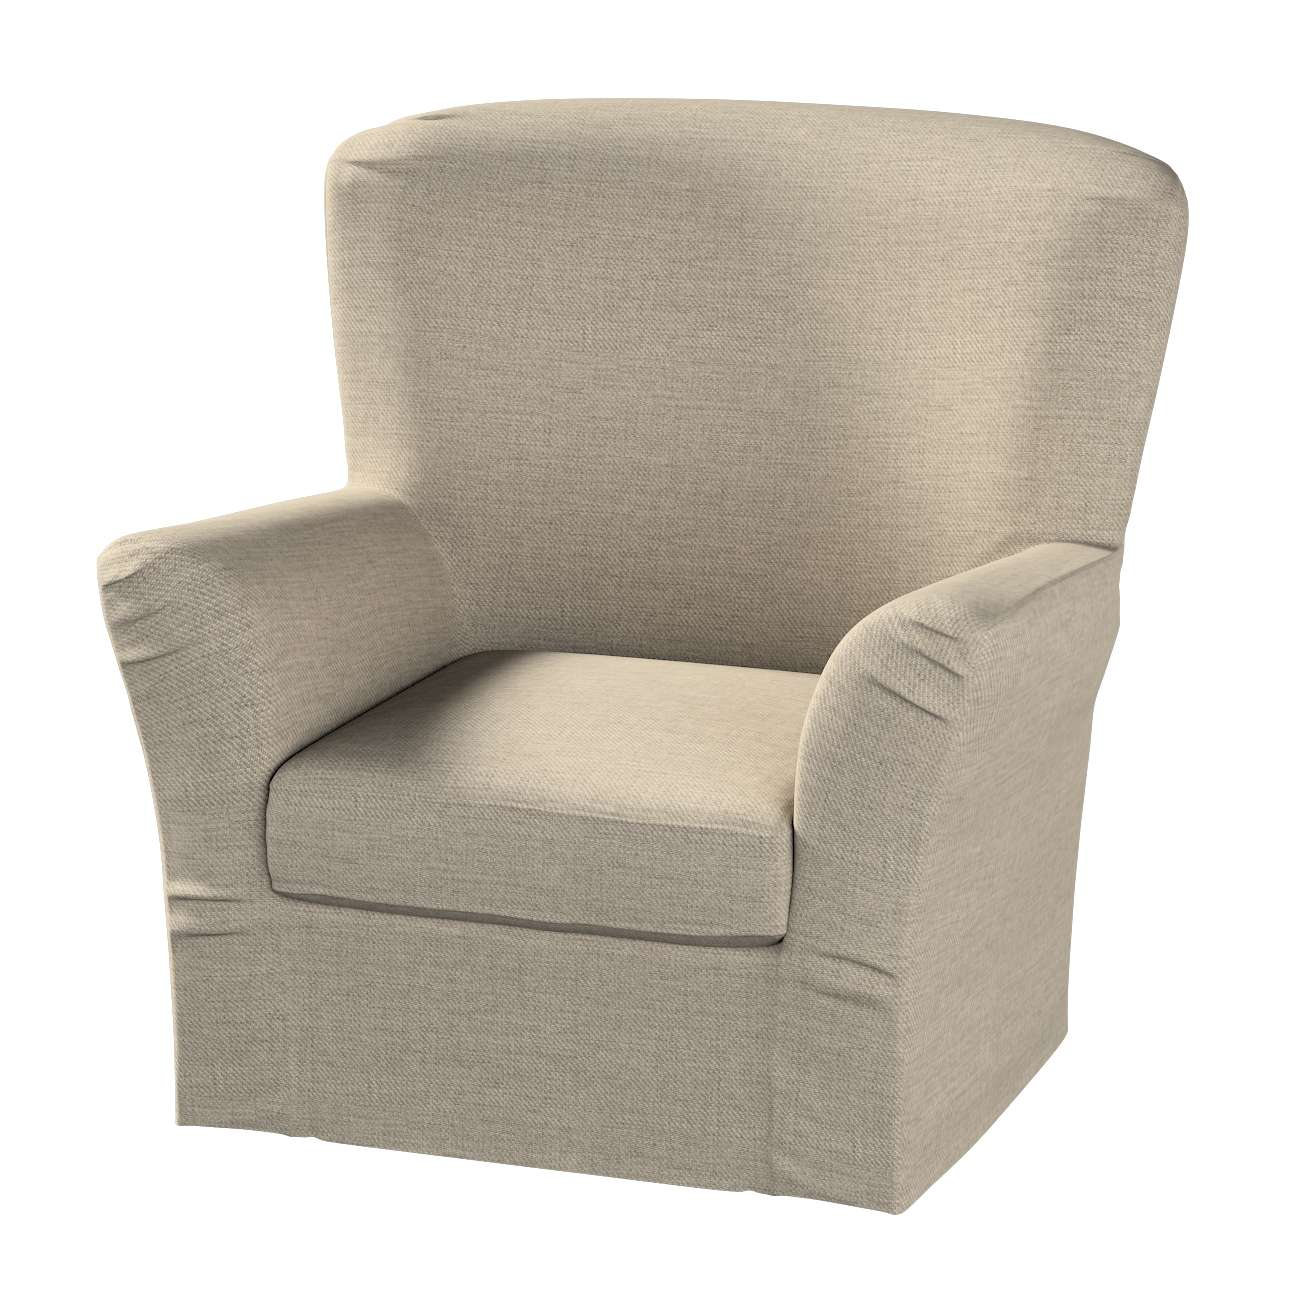 Tomelilla armchair  Tomelilla armchair in collection Living, fabric: 104-87